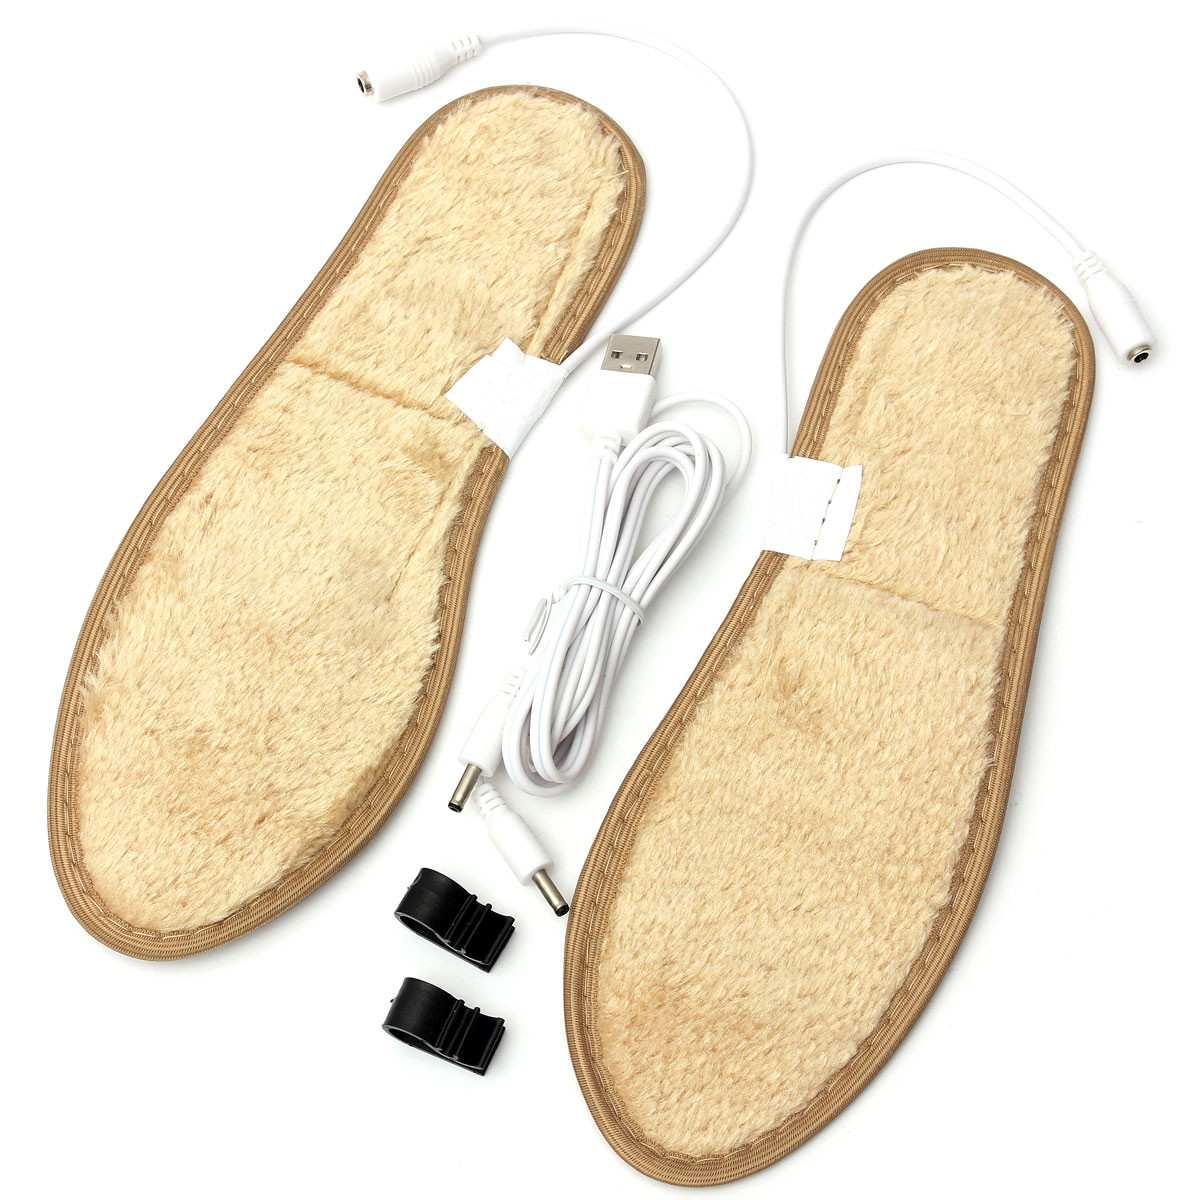 New Unisex Electric Foot Warmer Heater USB Charging Shoe Insoles Warm Shoes Pad